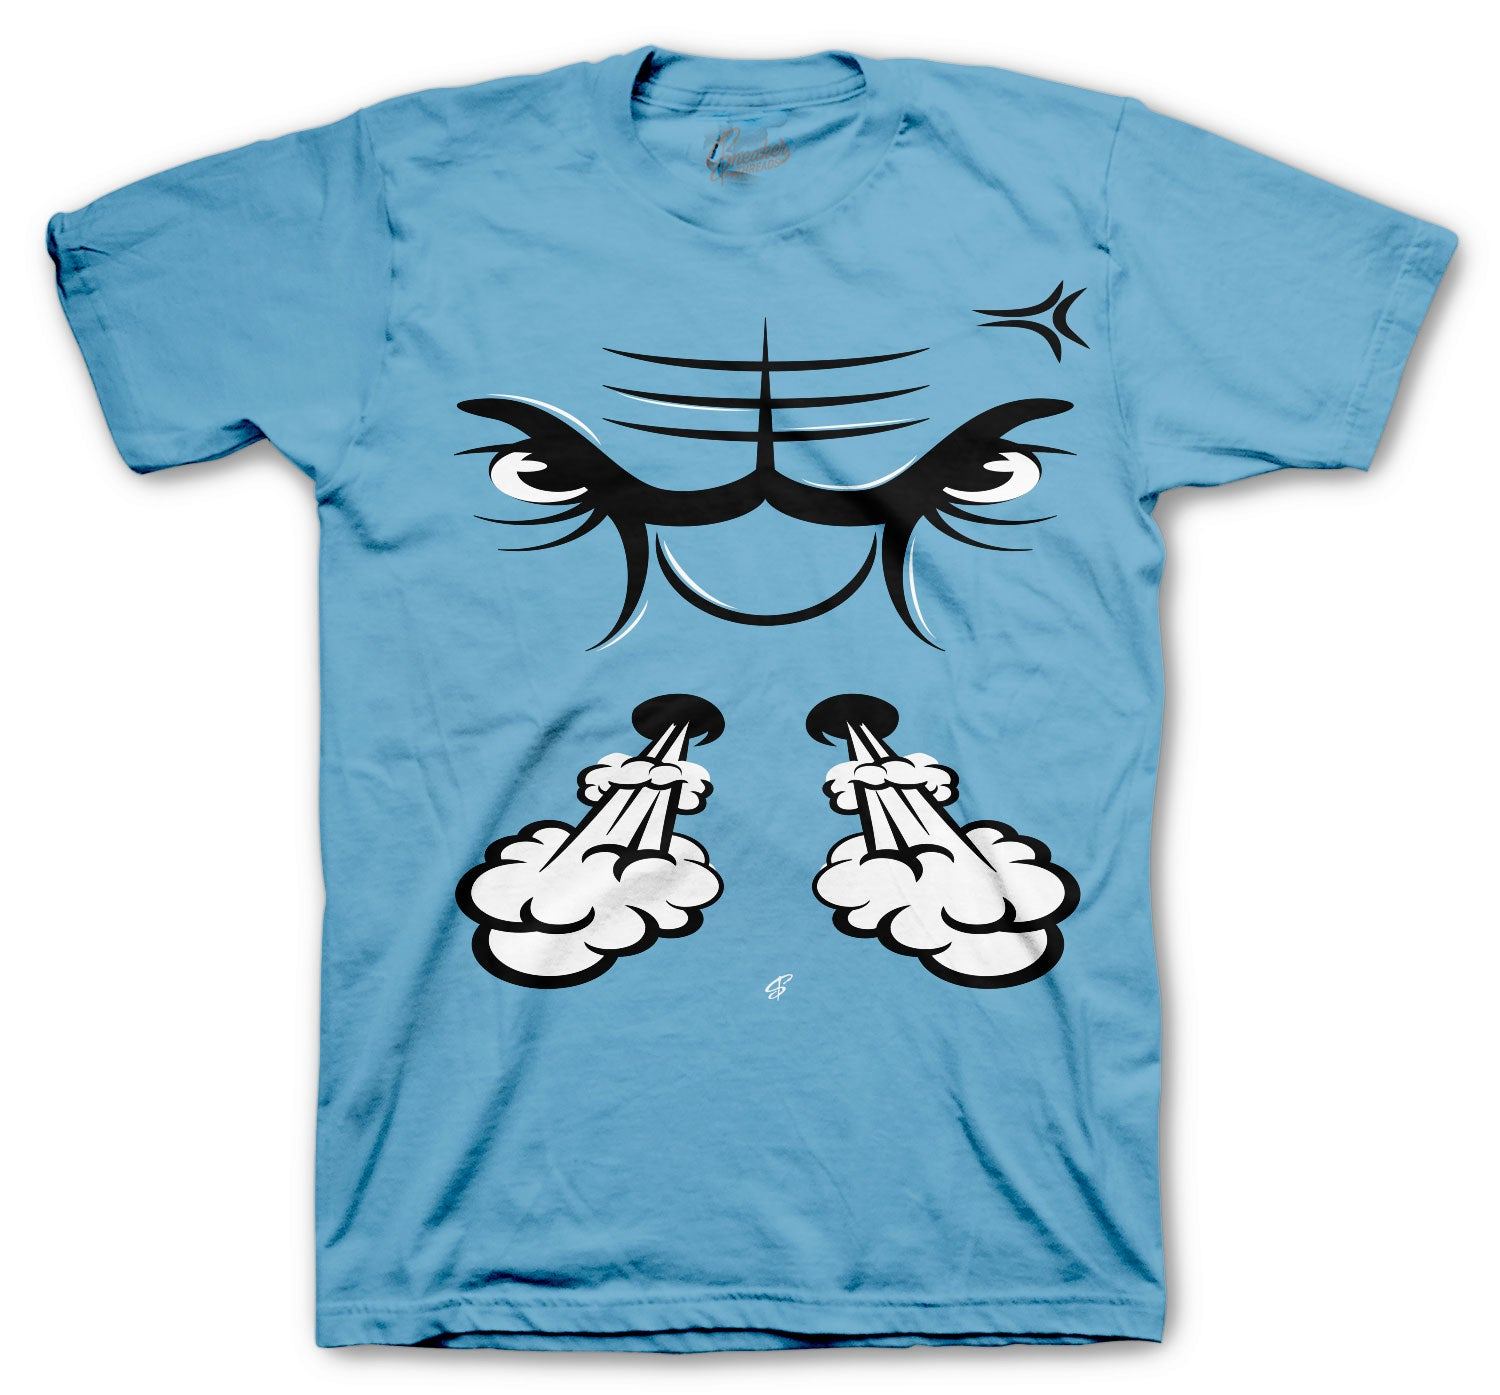 Jordan 11 Legend Blue Raging Face Shirt